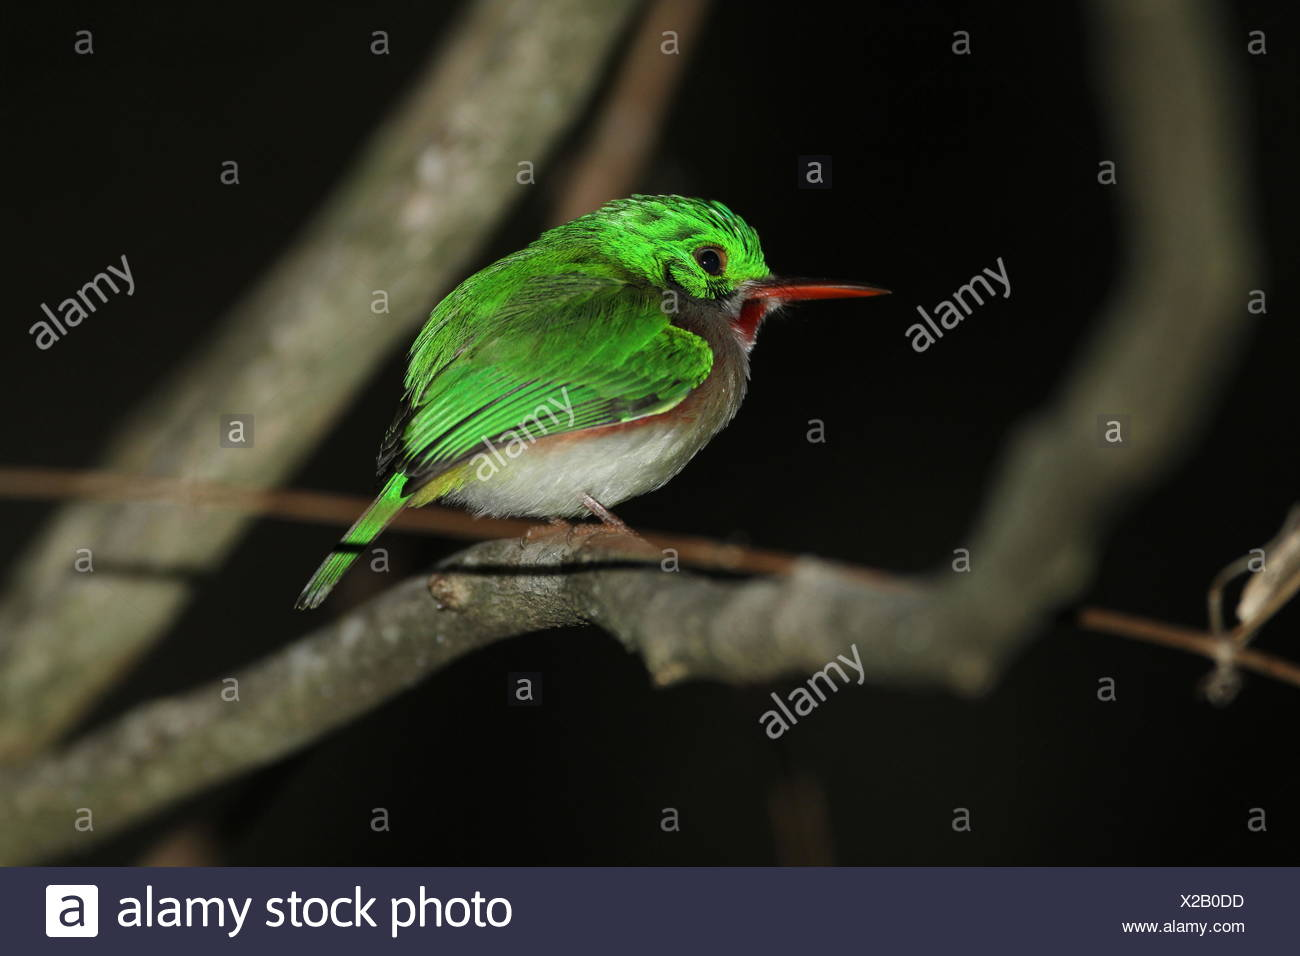 A narrow-billed today, Todus angustirostris, perching on the branch of a tree. - Stock Image